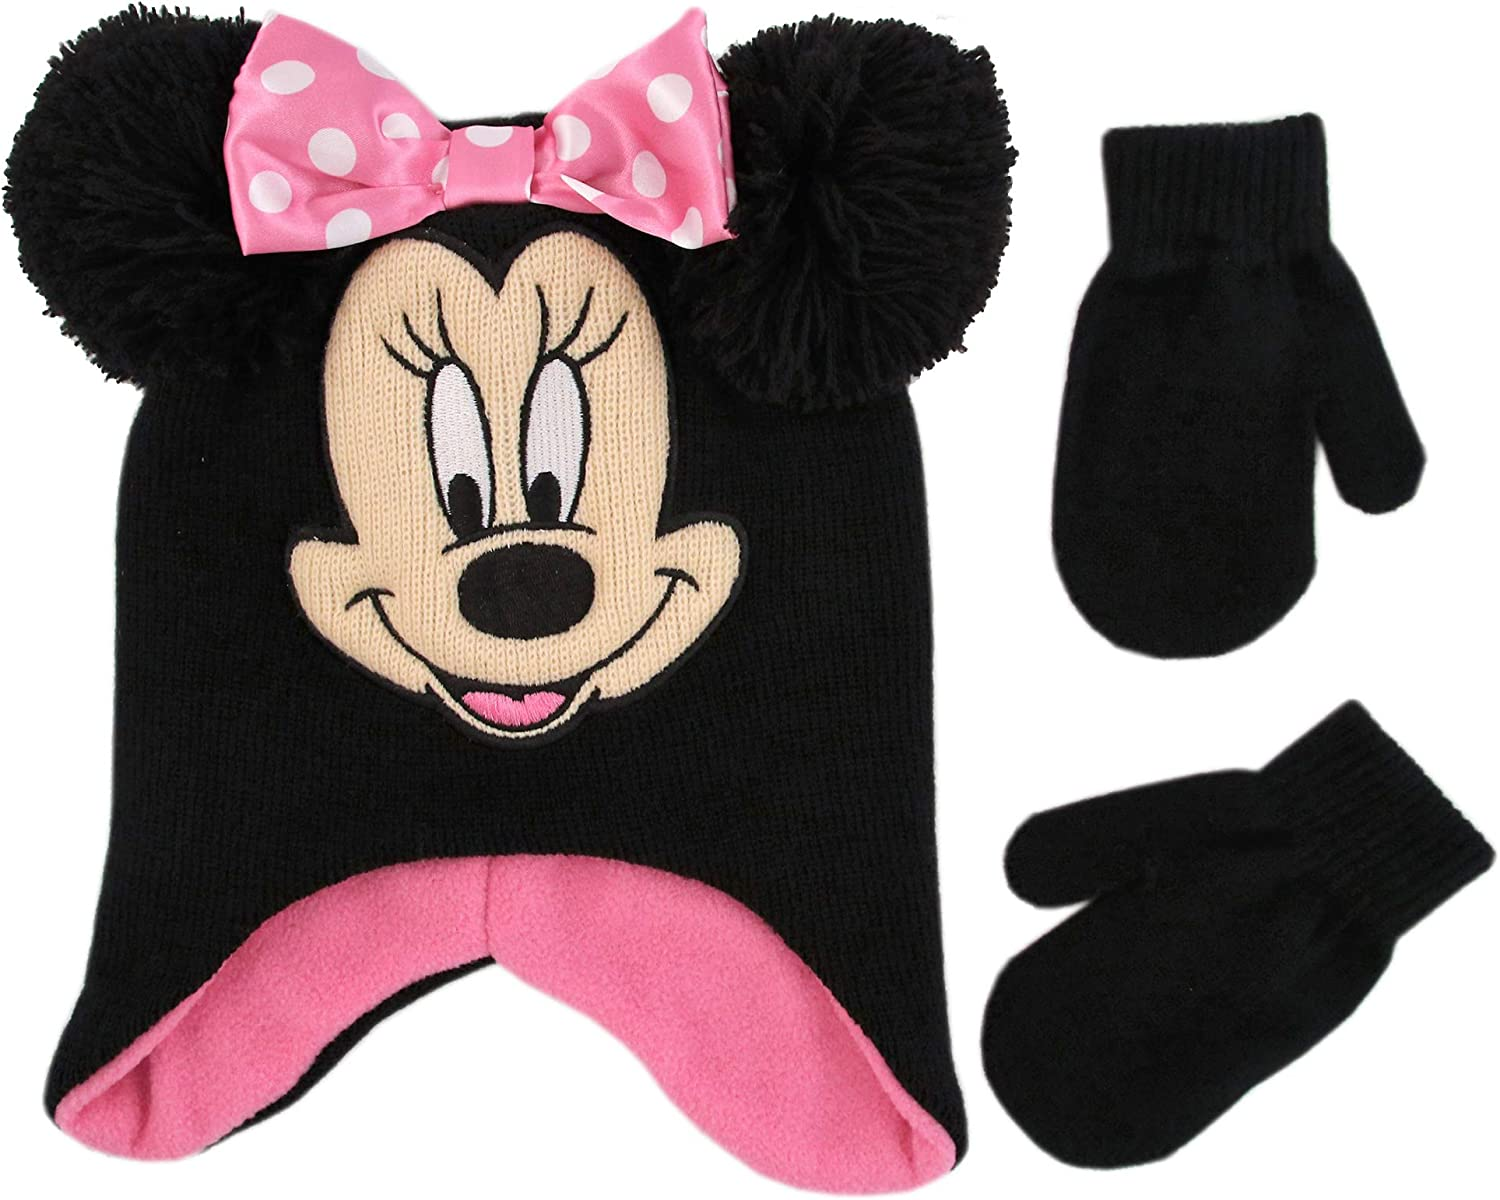 Disney Girl Winter Hat Set, Minnie Mouse Kids Beanie and Gloves Or Mittens for Age 4-7